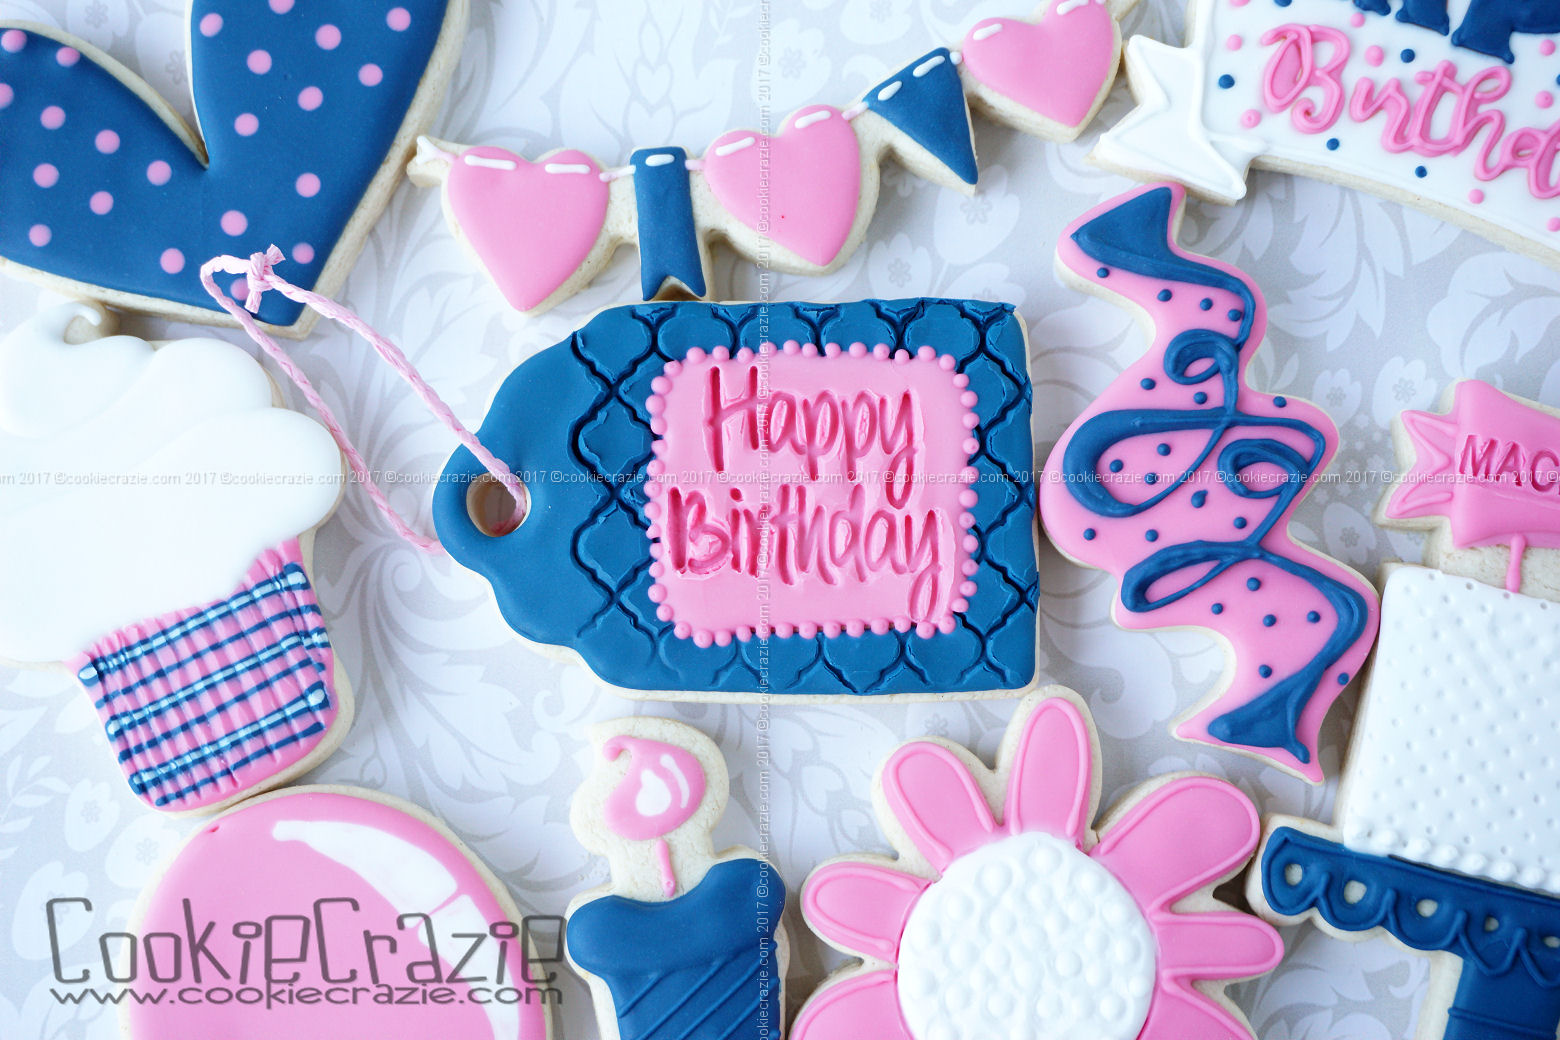 Happy Birthday Gift Tag Decorated Cookie YouTube Video  HERE  Happy Birthday Impression Tool found  HERE